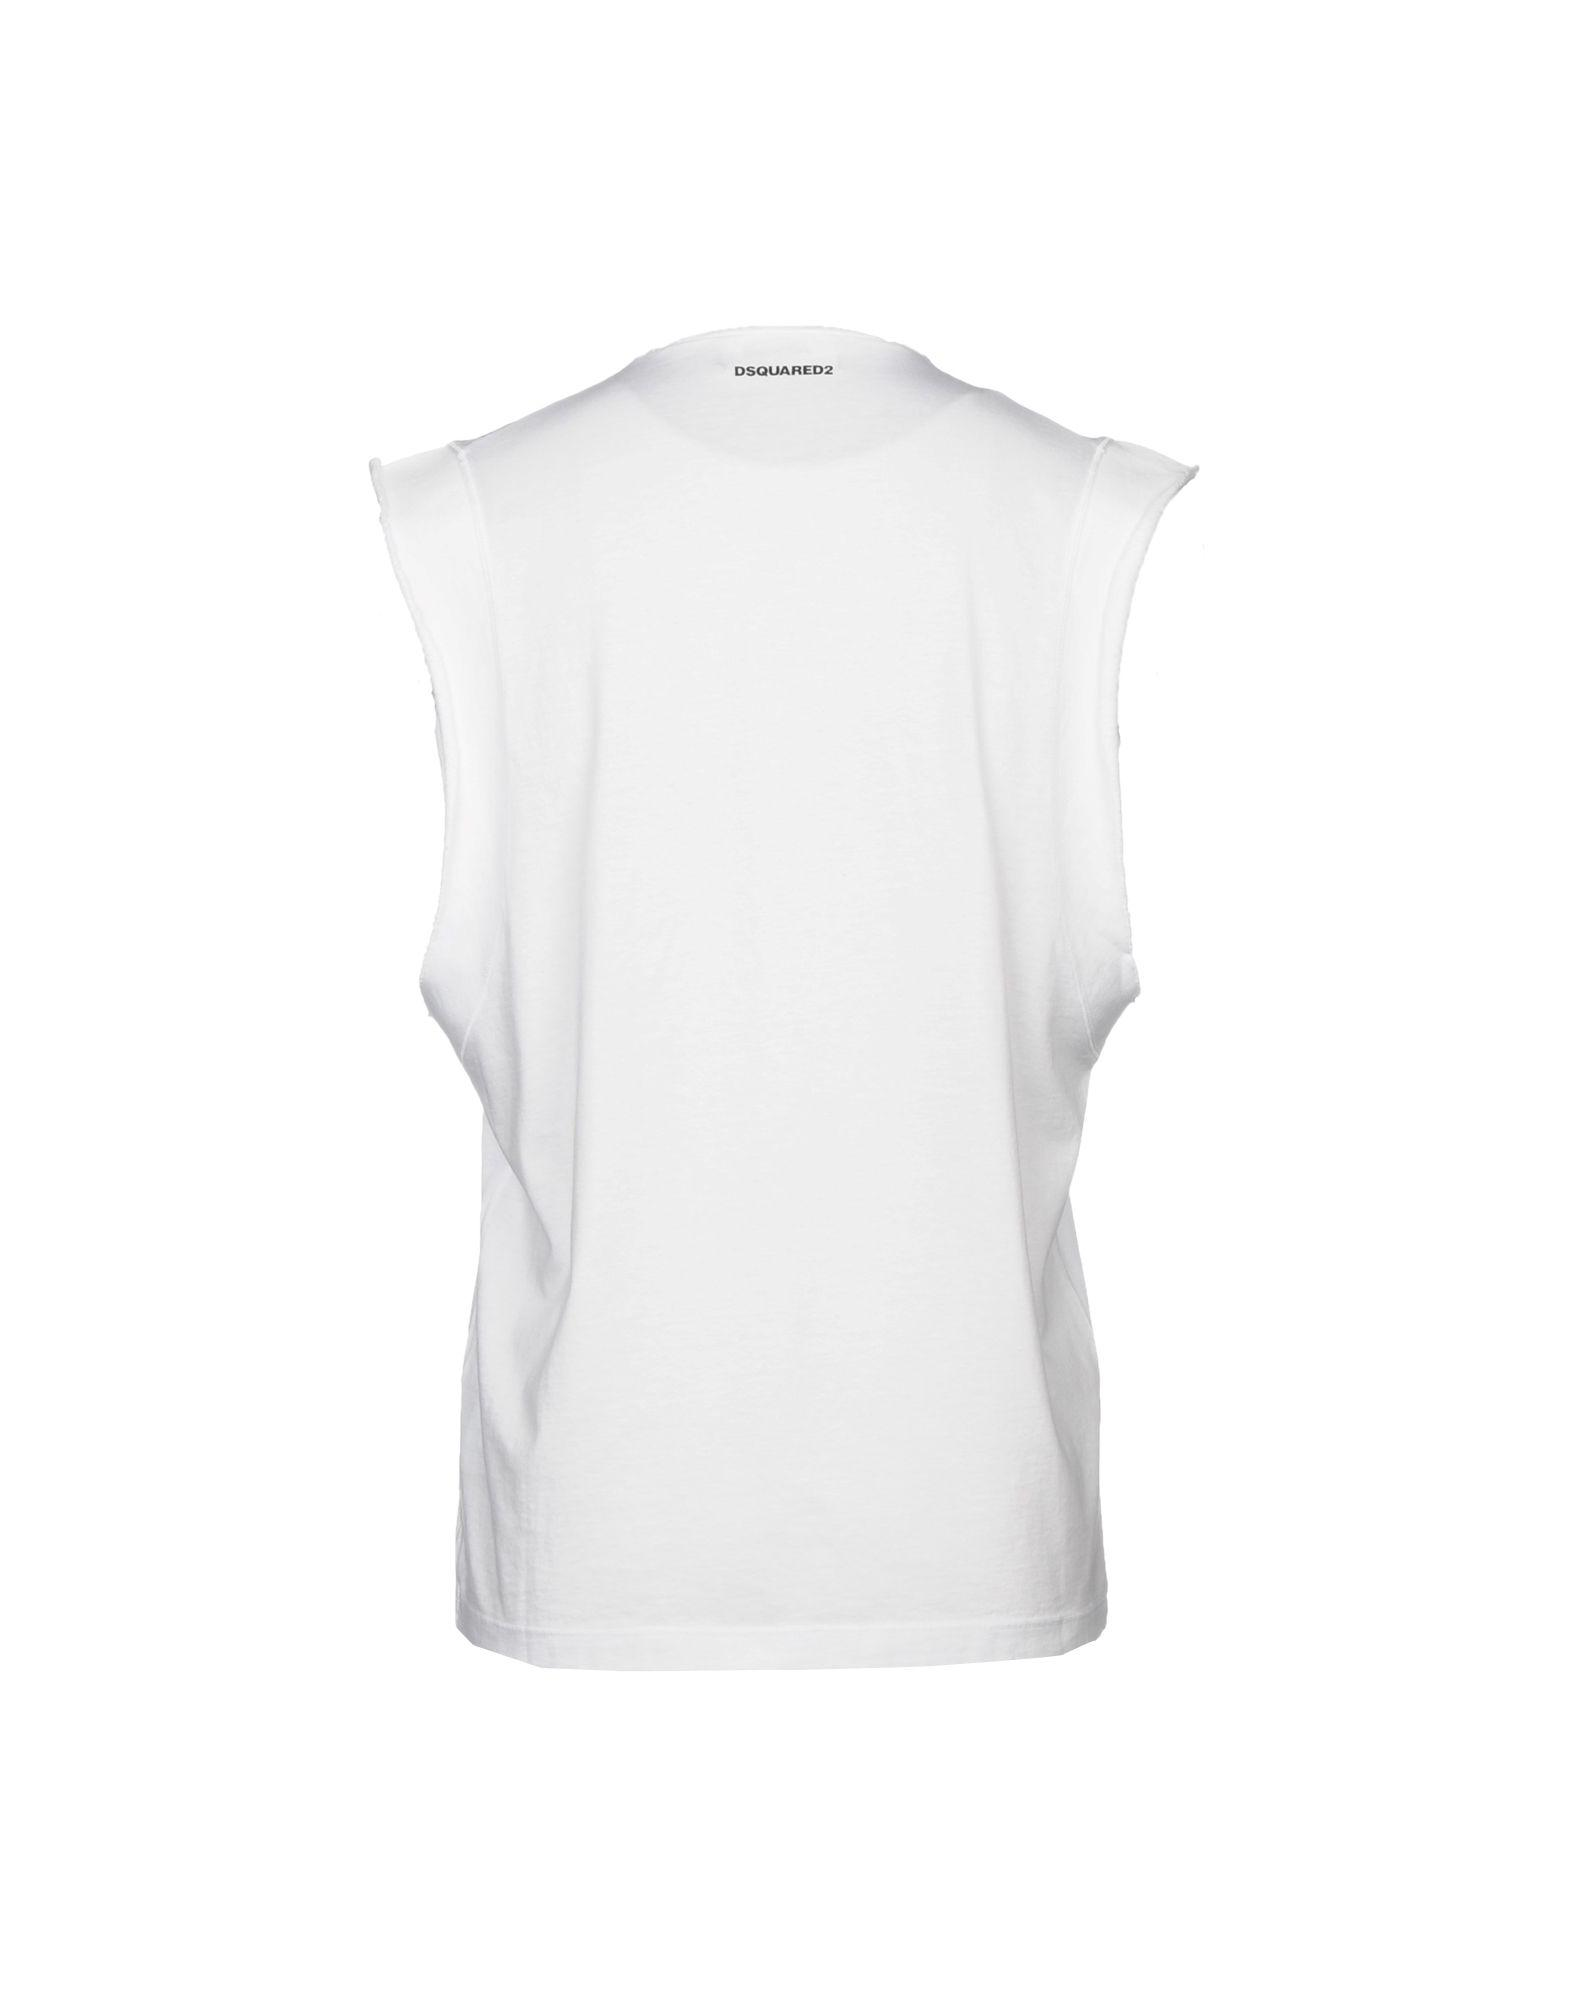 Lyst - Dsquared² T-shirt in White for Men c71c8a927